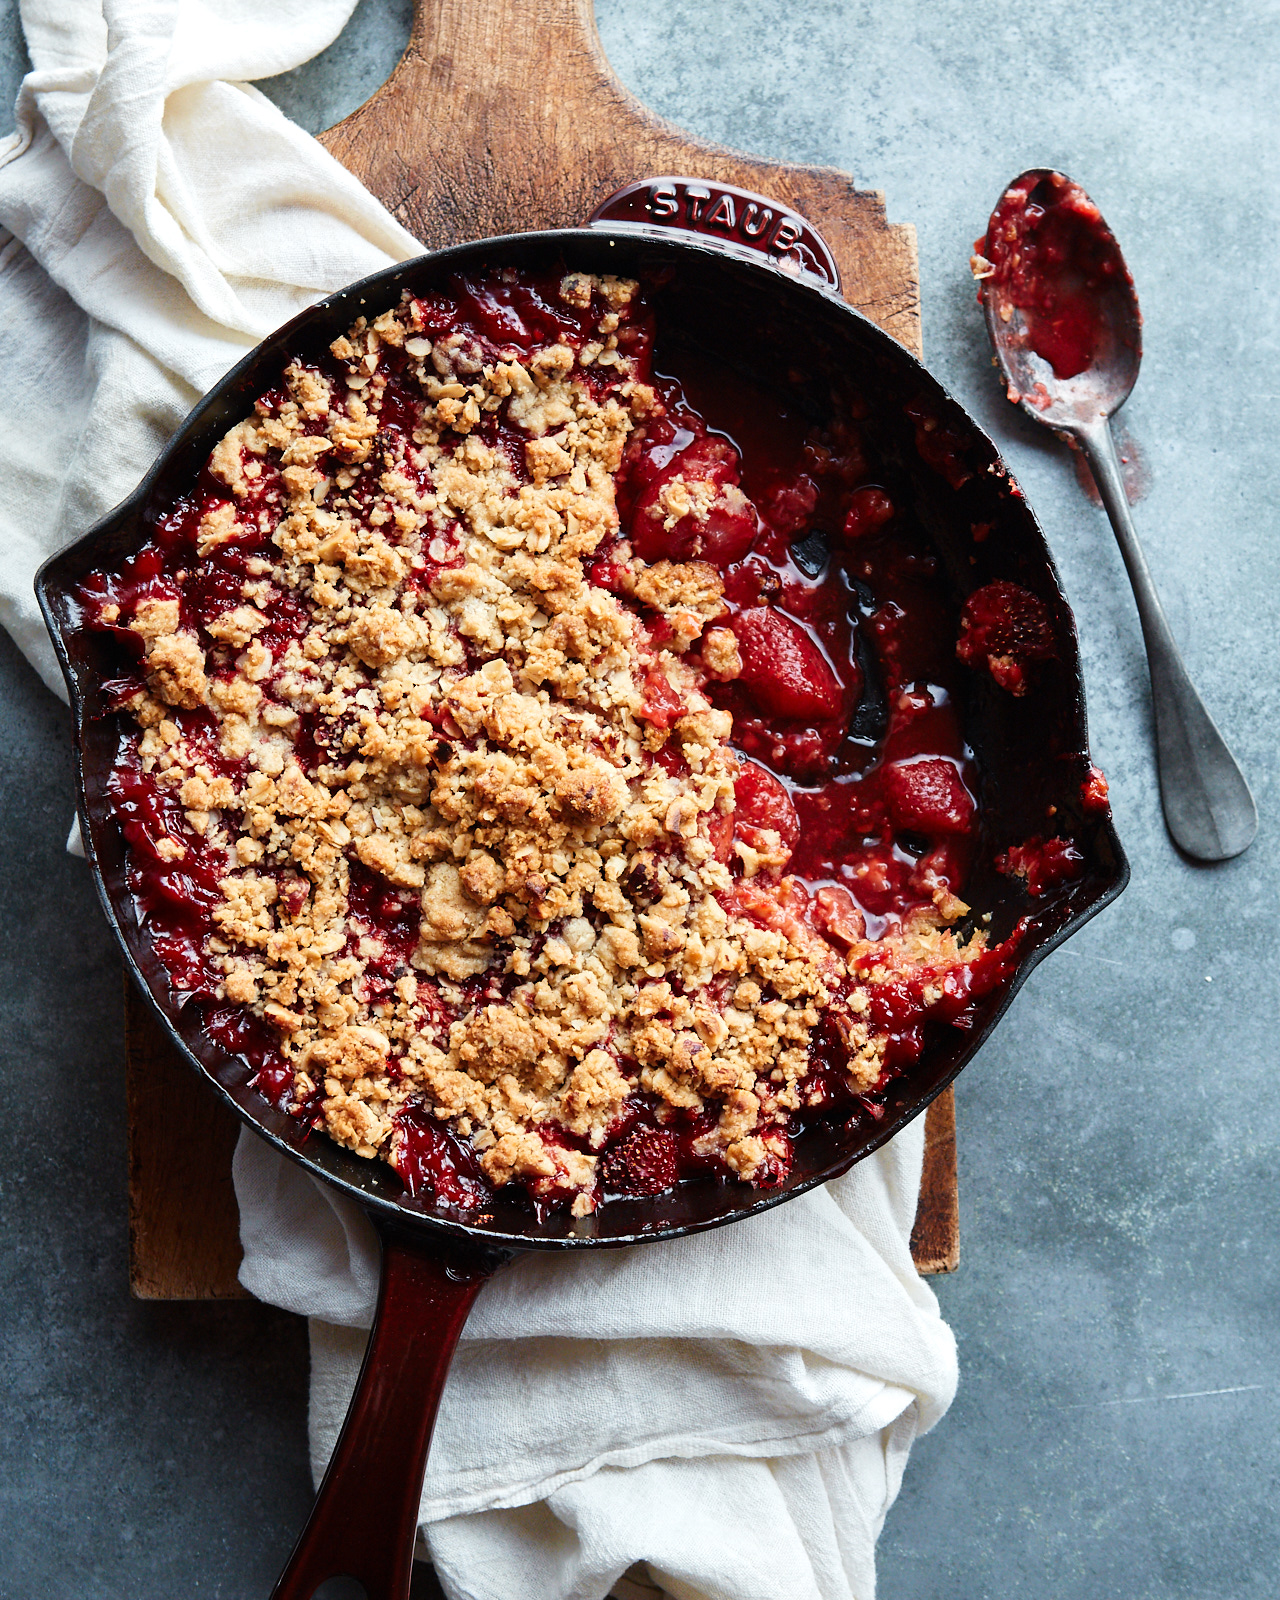 StrawberryCrumble_0040